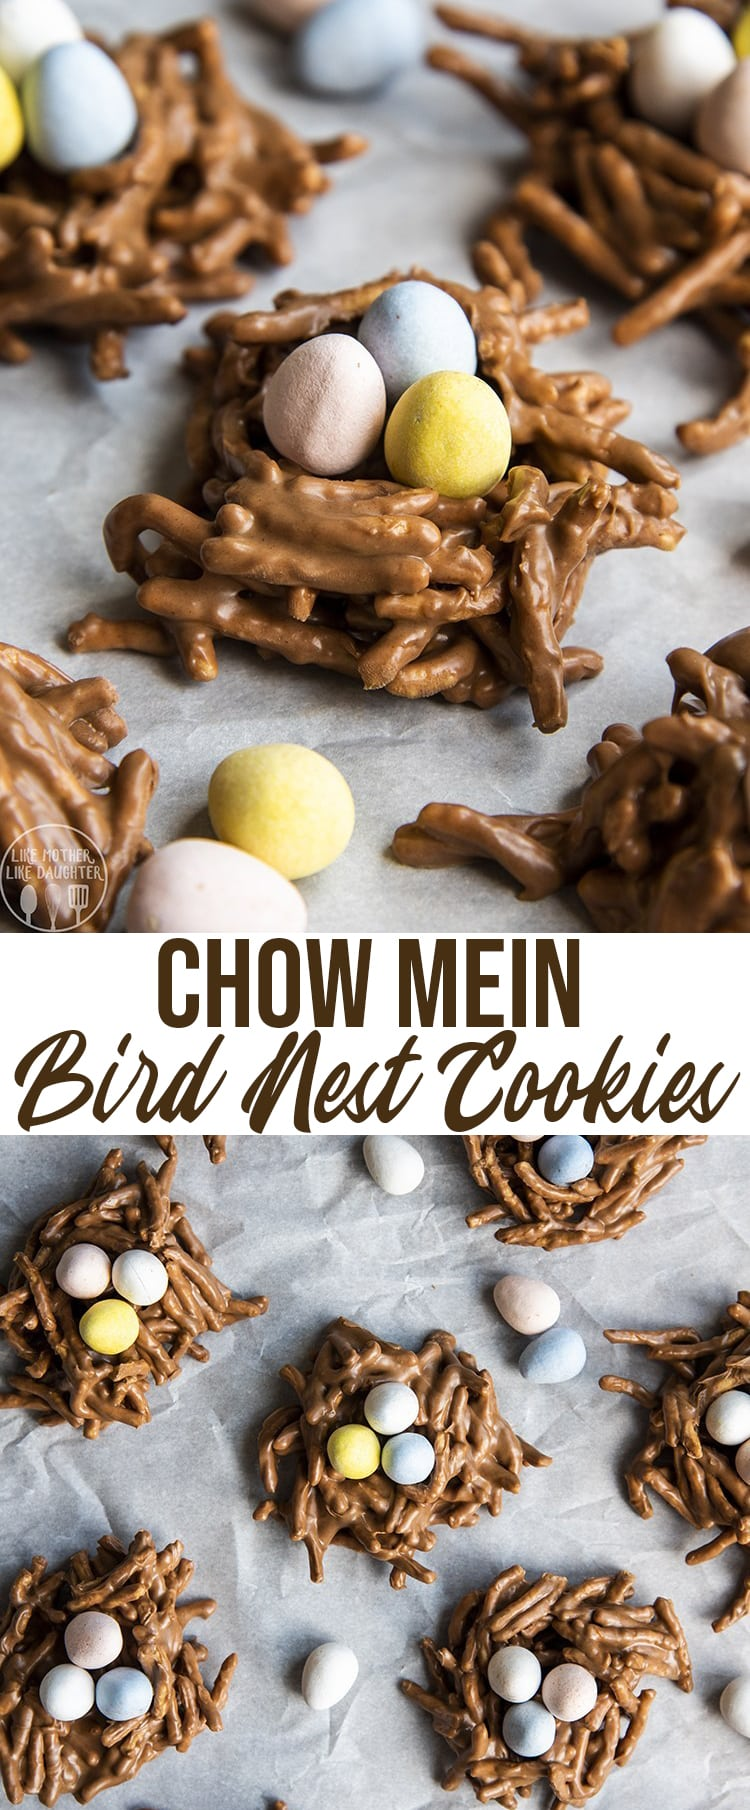 These cute chow mein Birds Nest Cookies are so fun for Easter. They combine chocolate, butterscotch, and peanut butter topped with your favorite chocolate Easter eggs, for the perfect Easter treat. #Easter #EasterDinner